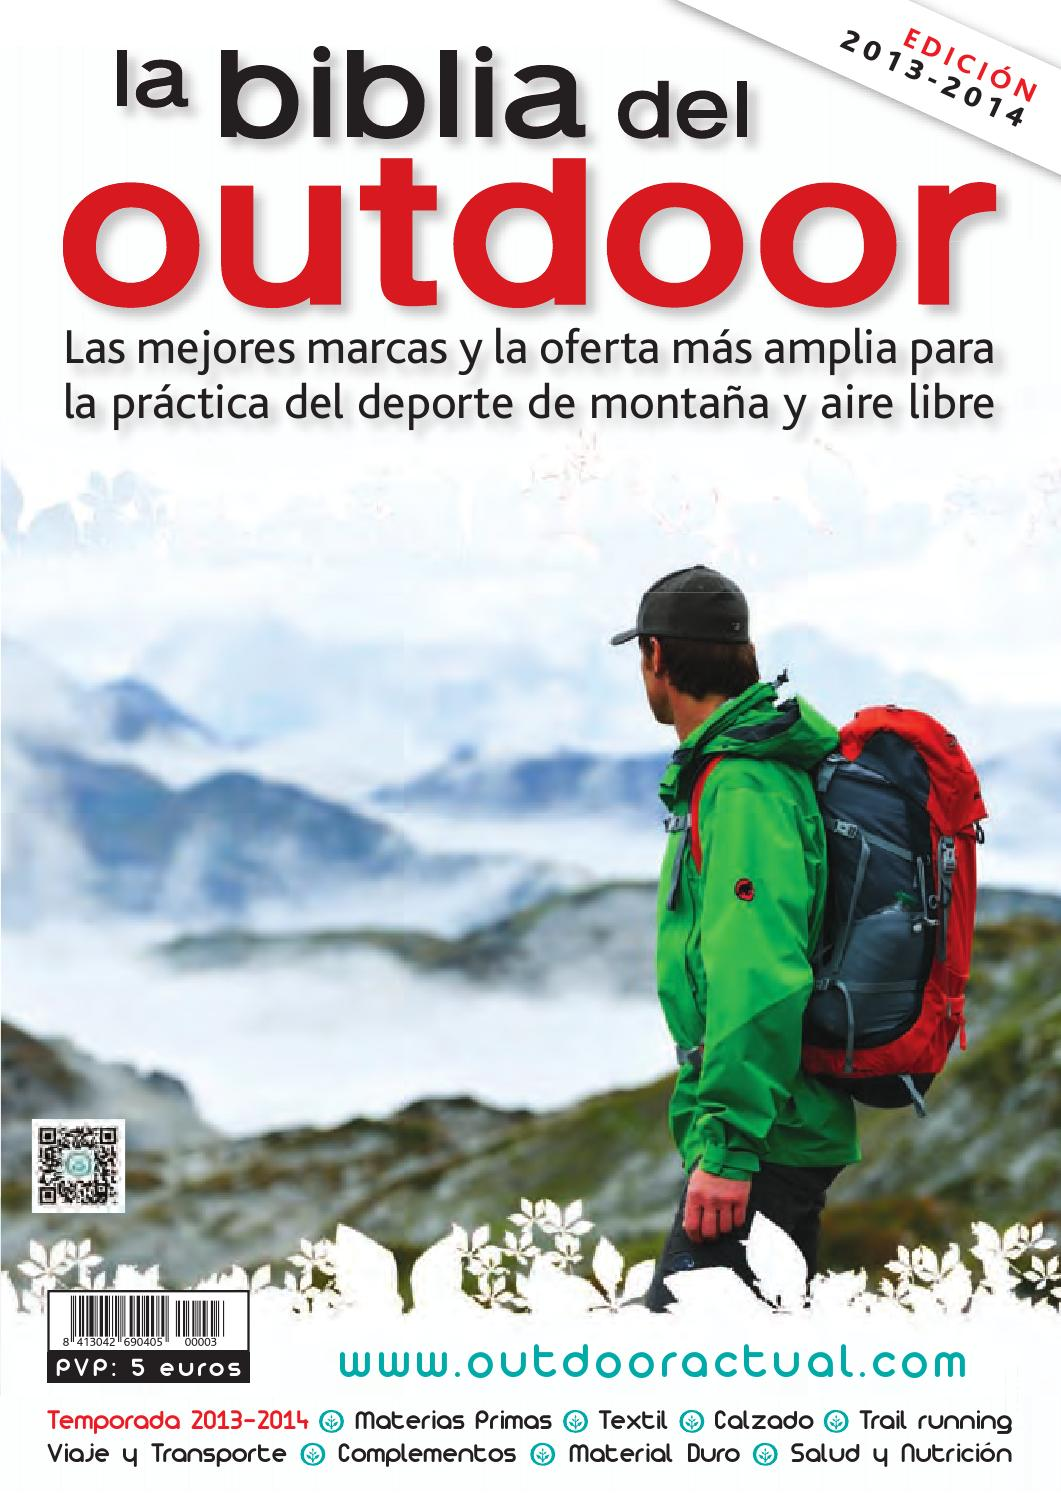 442d3fef2 La Biblia del Outdoor 2013-14 by Outdoor Actual - issuu